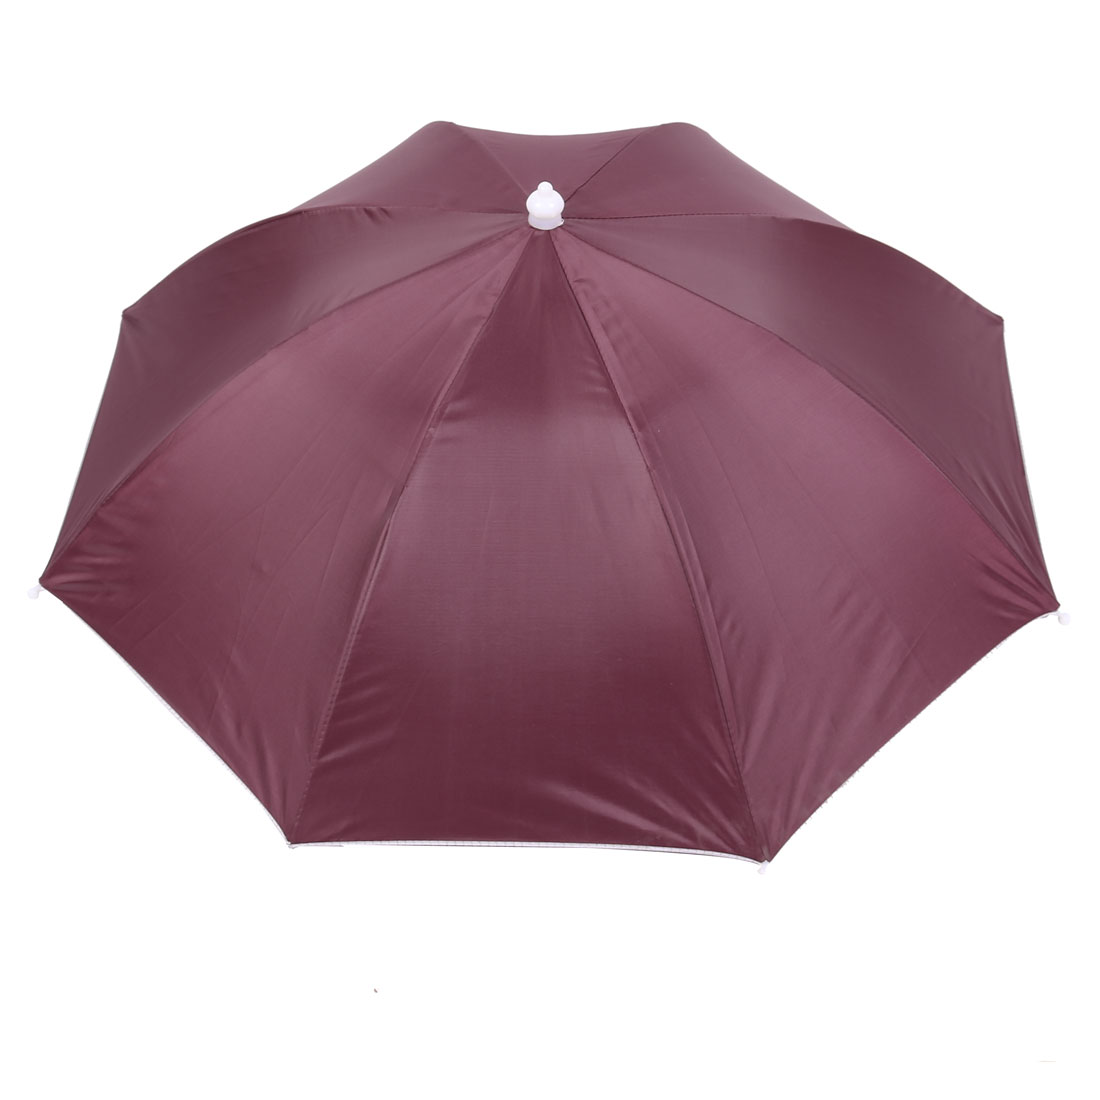 Fishing Camping Burgundy Polyester Elastic Band Foldable Sun Umbrella Hat